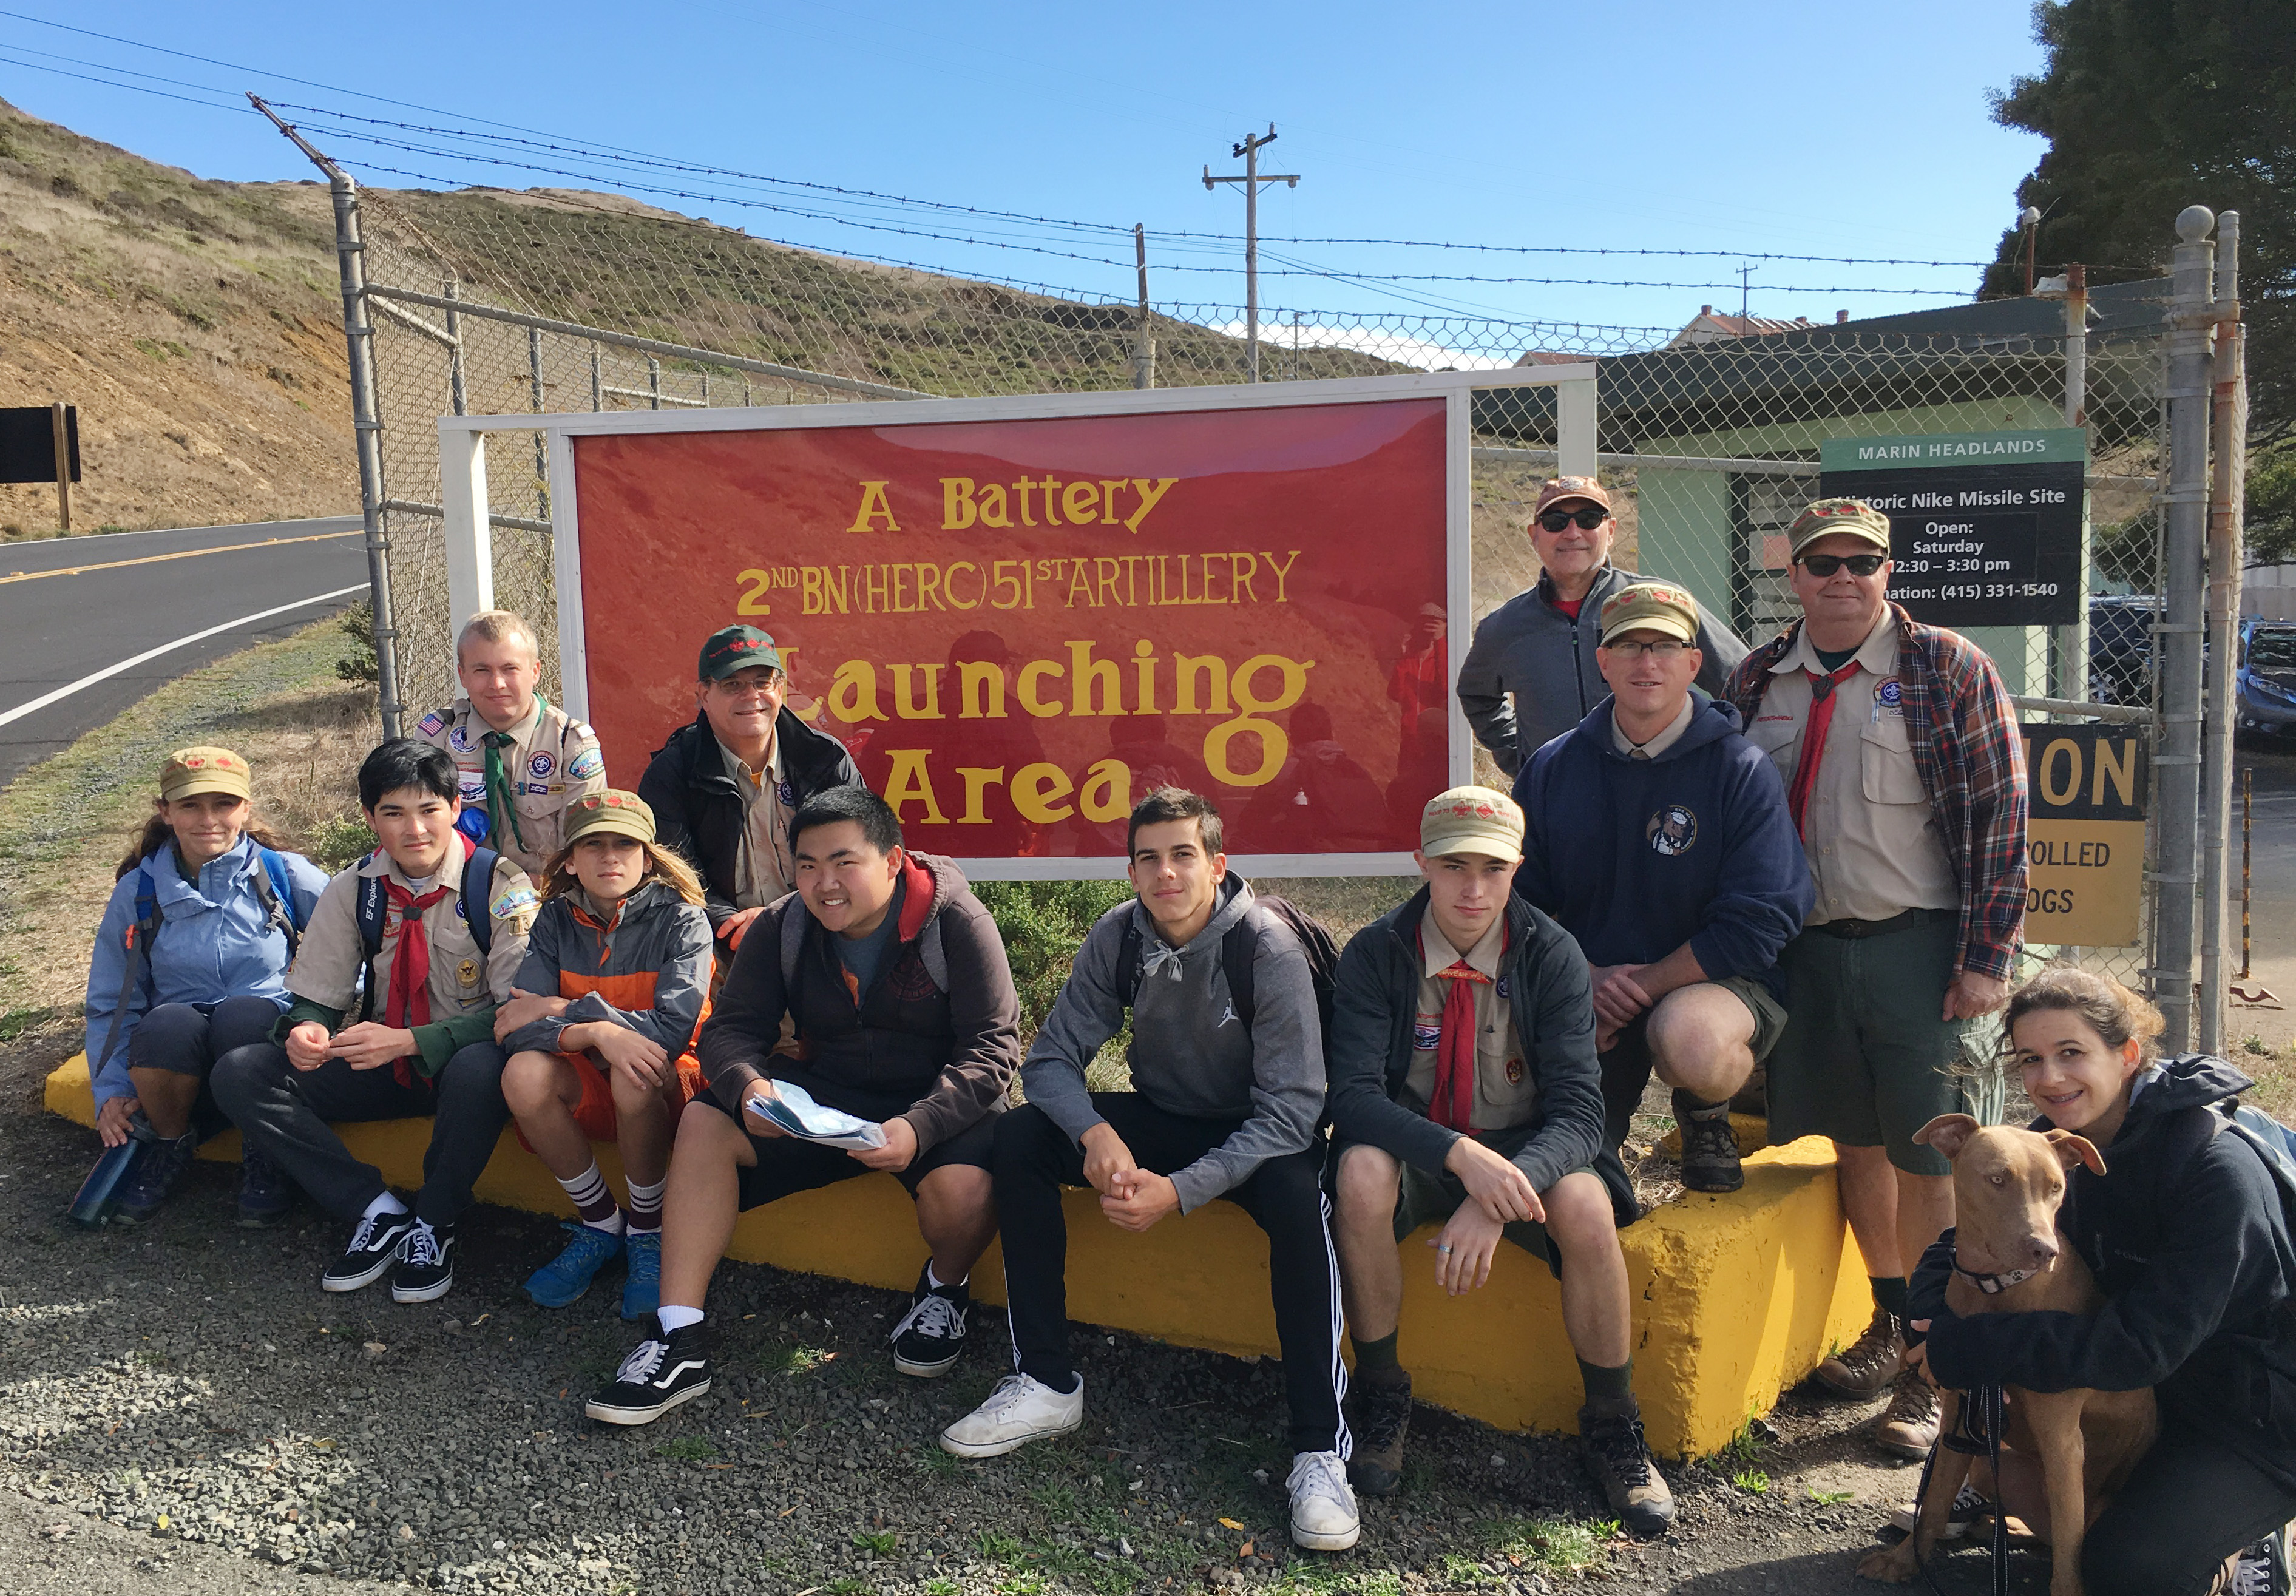 Troop 73 A Battery gate